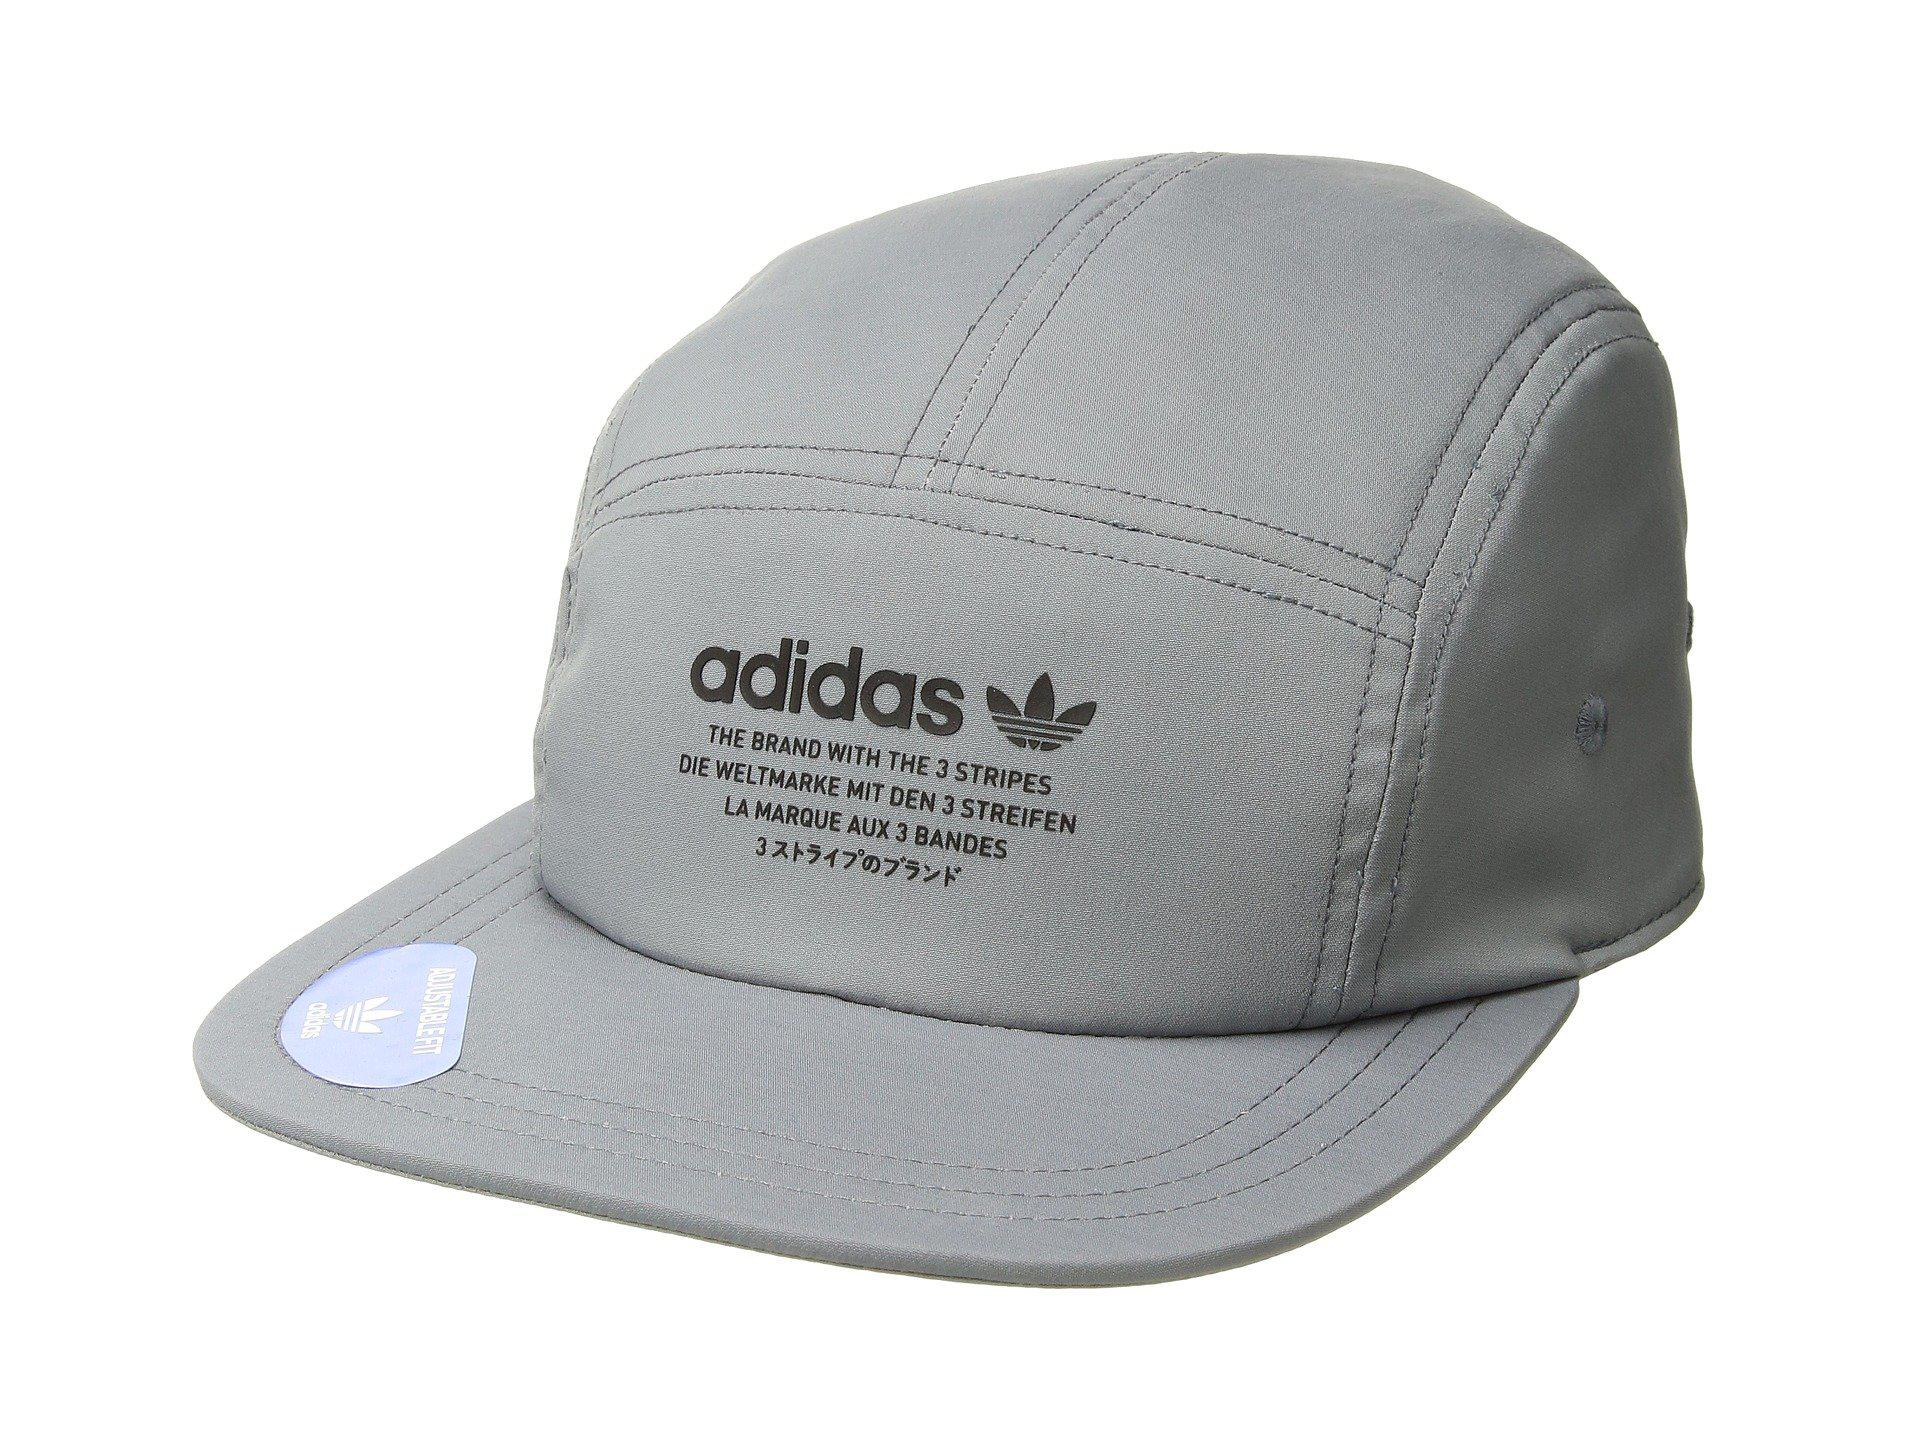 Lyst - adidas Originals Originals Nmd 5-panel (grey black) Caps in ... ae3db7efa2f2